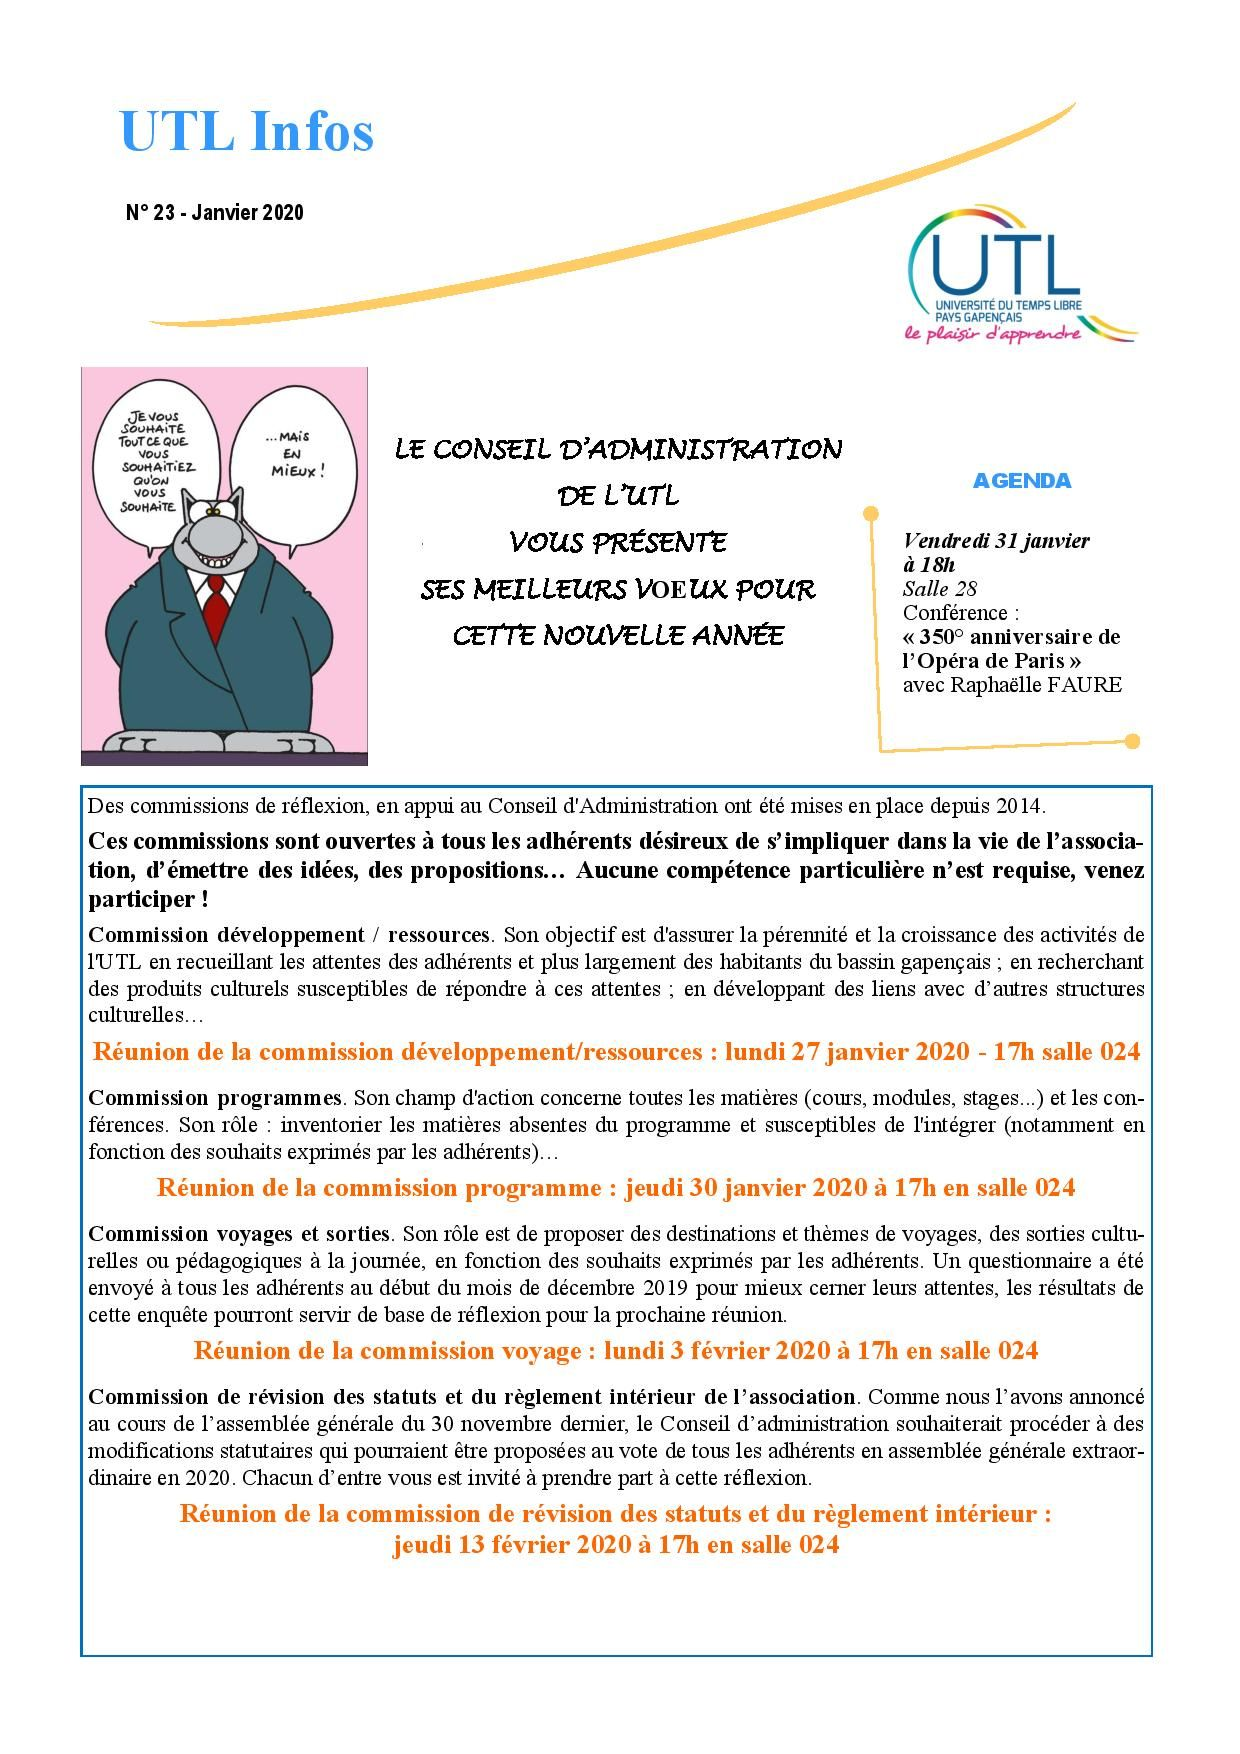 UTL Infos 23668 page 001